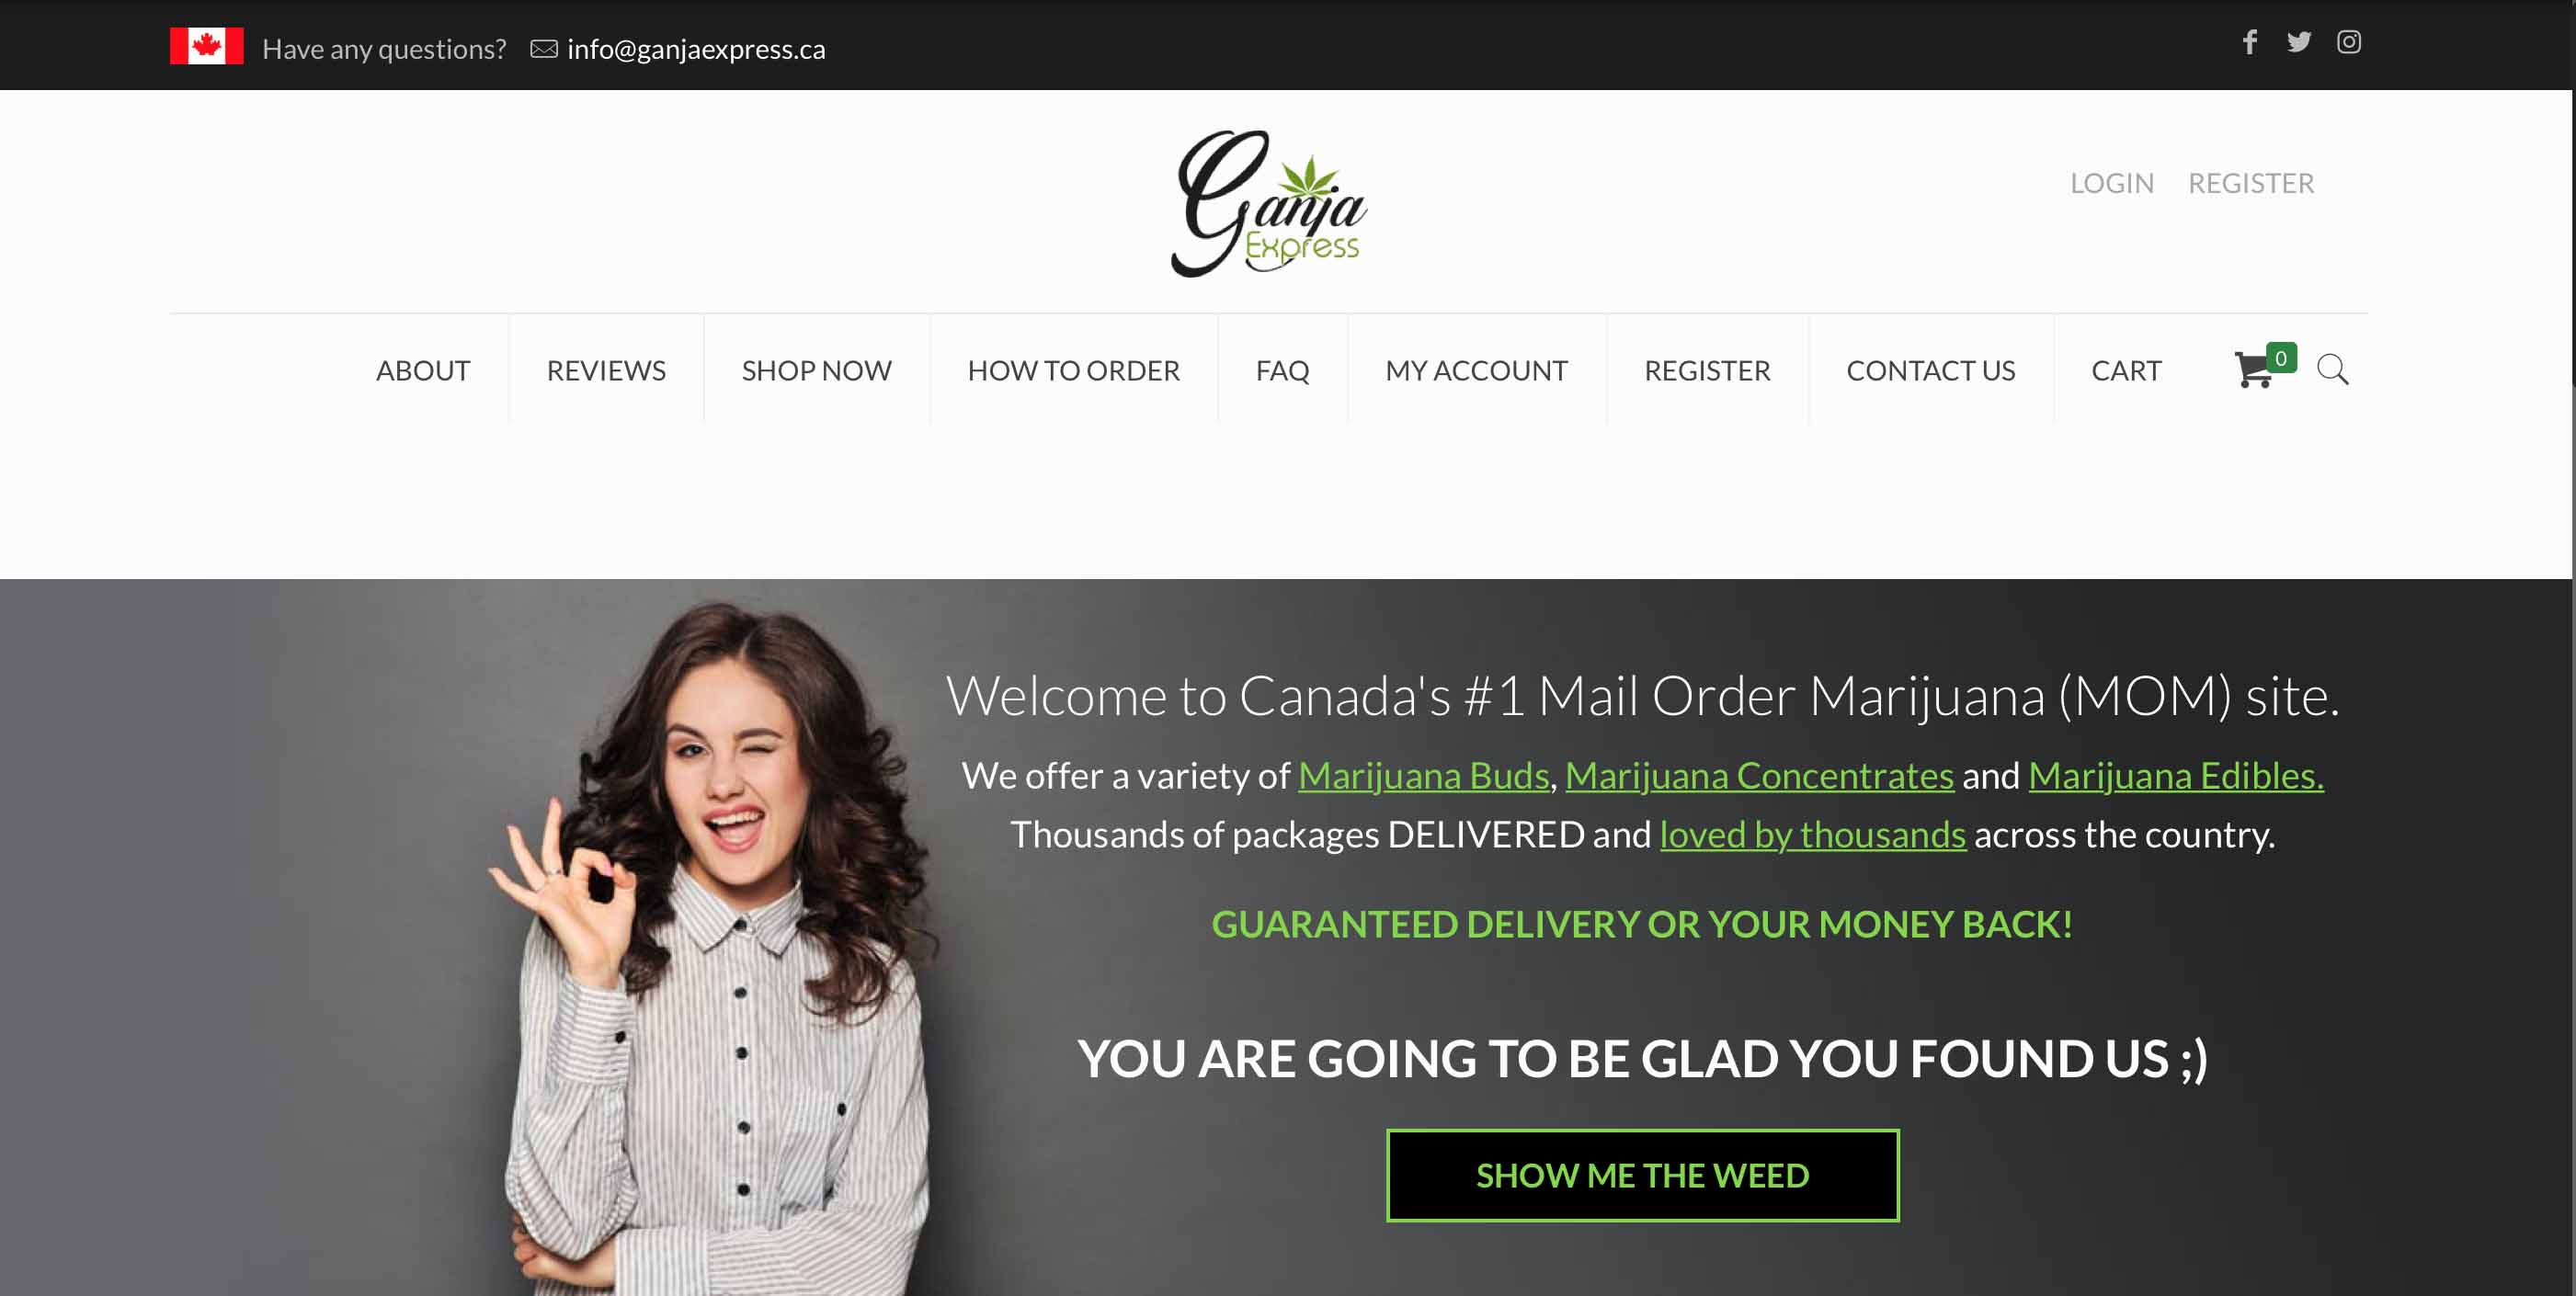 Ganja Express review and coupon code to save money on legal weed in Canada